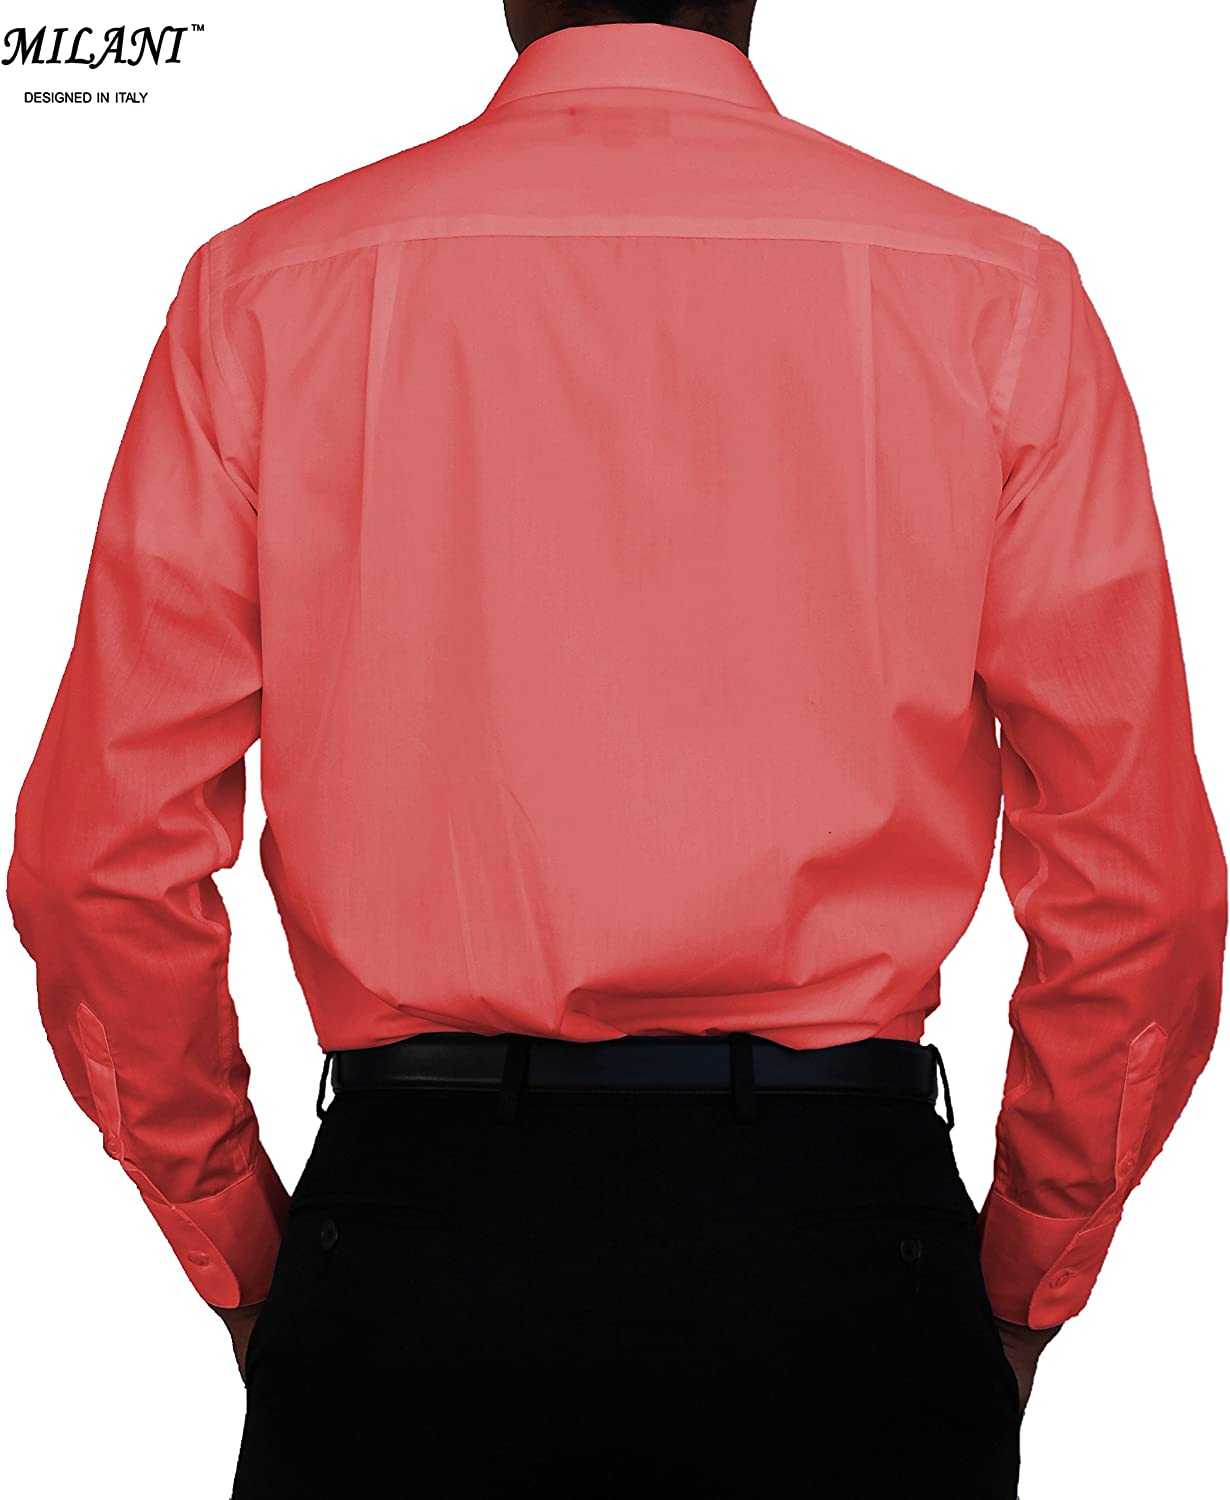 Milani Mens Dress Shirt with Convertible Cuffs 17.5 Neck 34//35 Sleeve in Coral